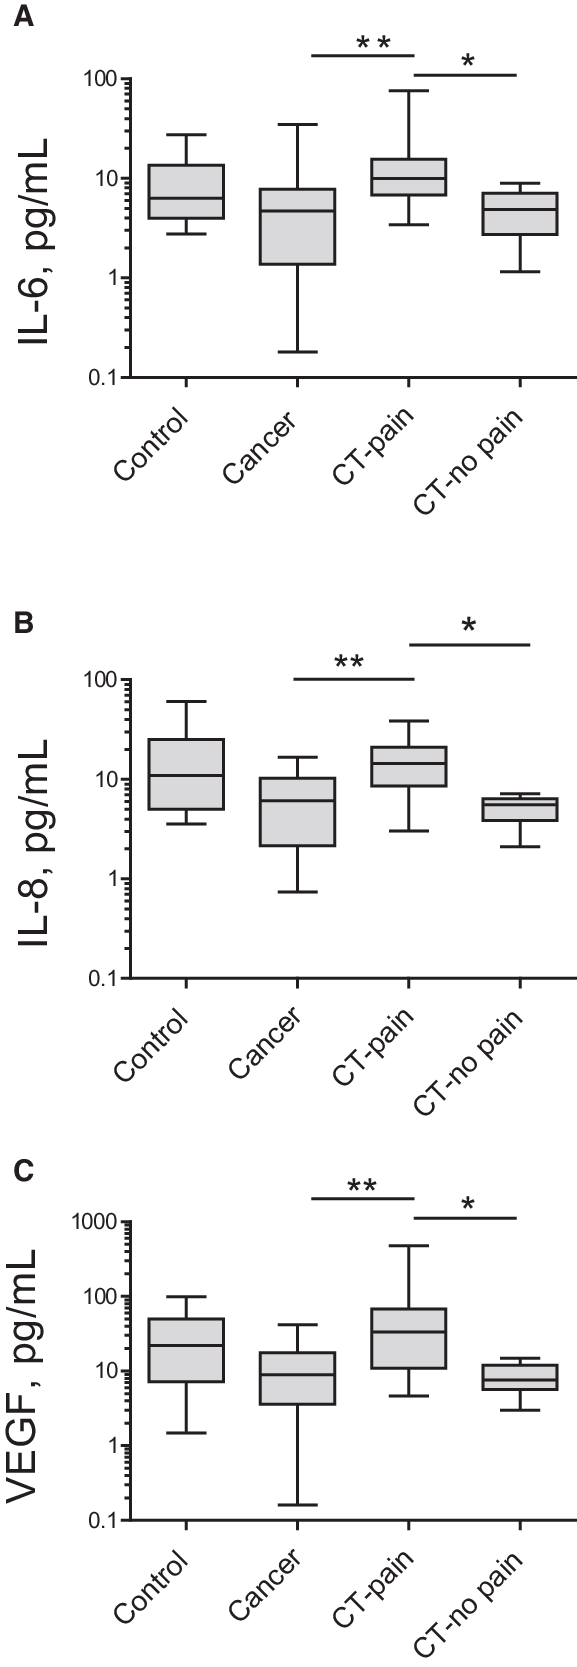 hight resolution of plasma concentrations of cytokines in healthy individuals control untreated prostate cancer patients and chemotherapy treated prostate cancer patients